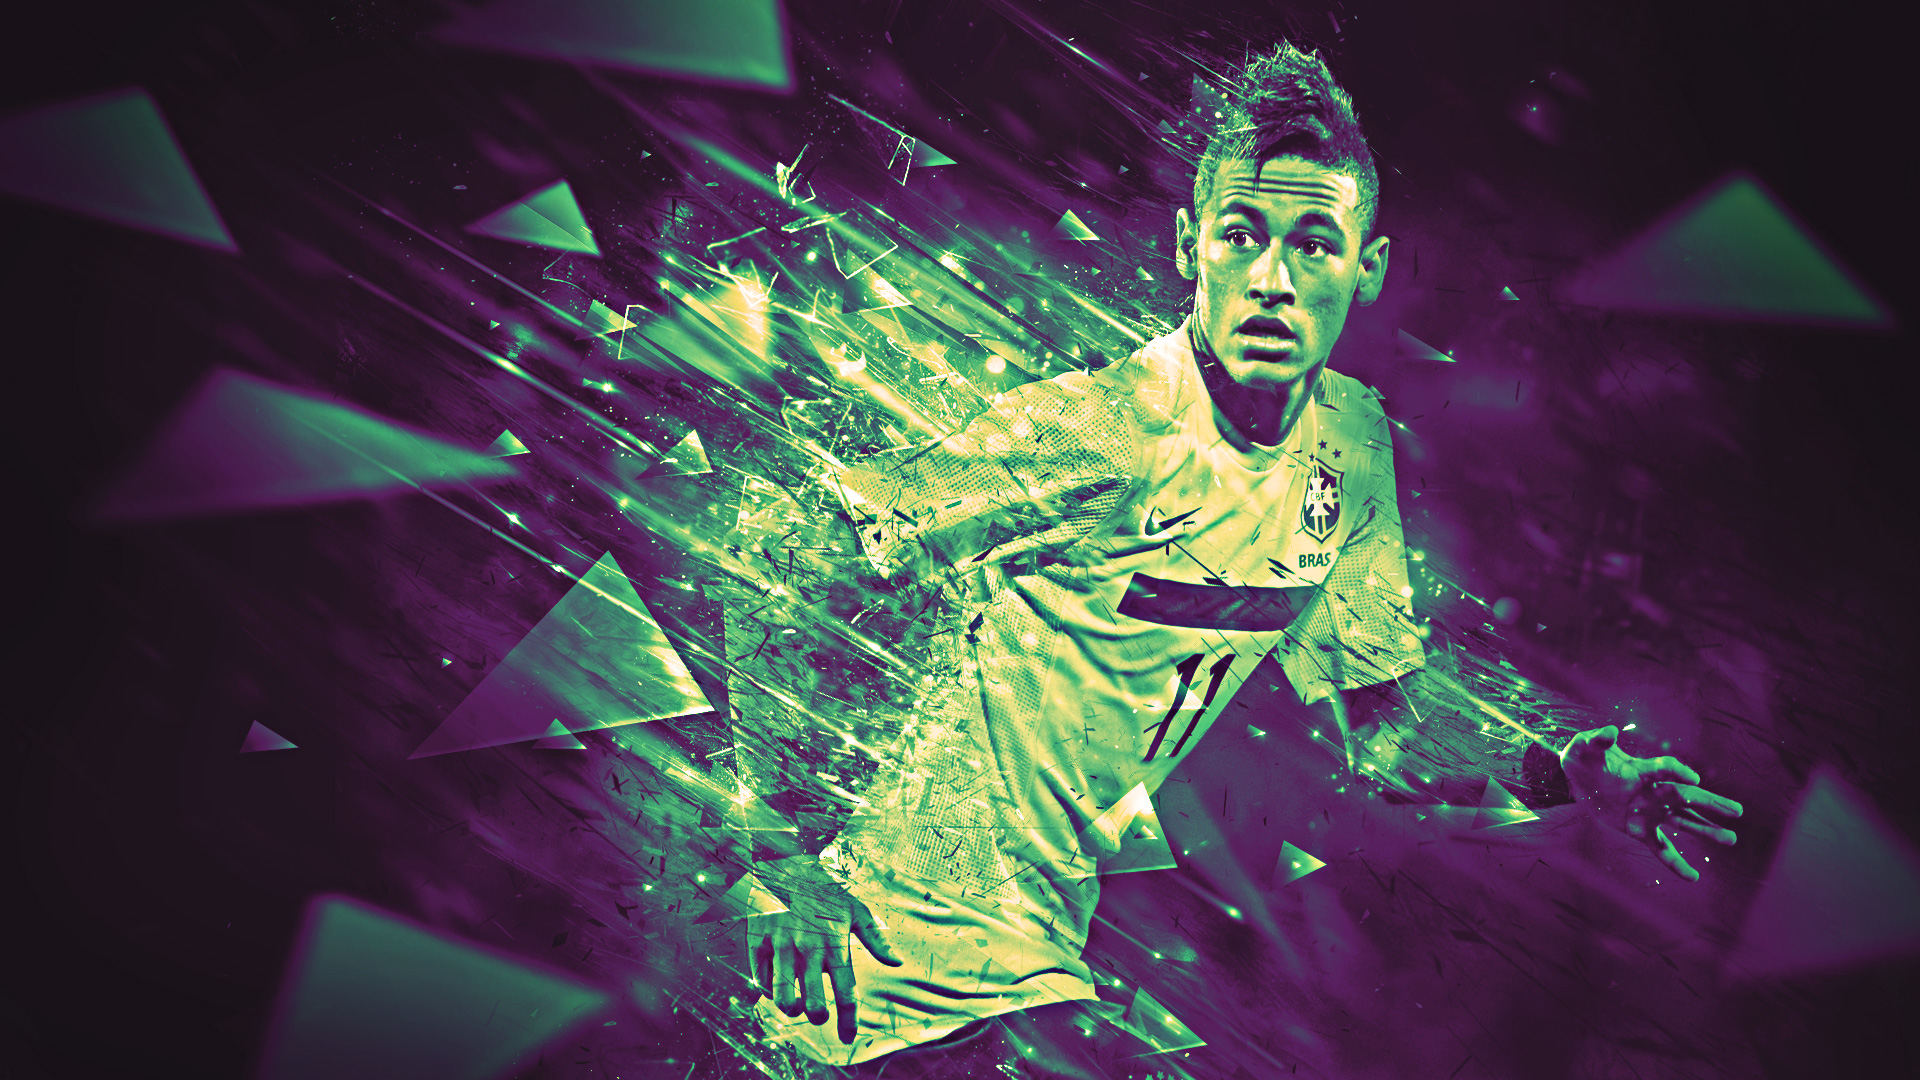 Neymar wallpapers in 2016  Barcelona and Brazil